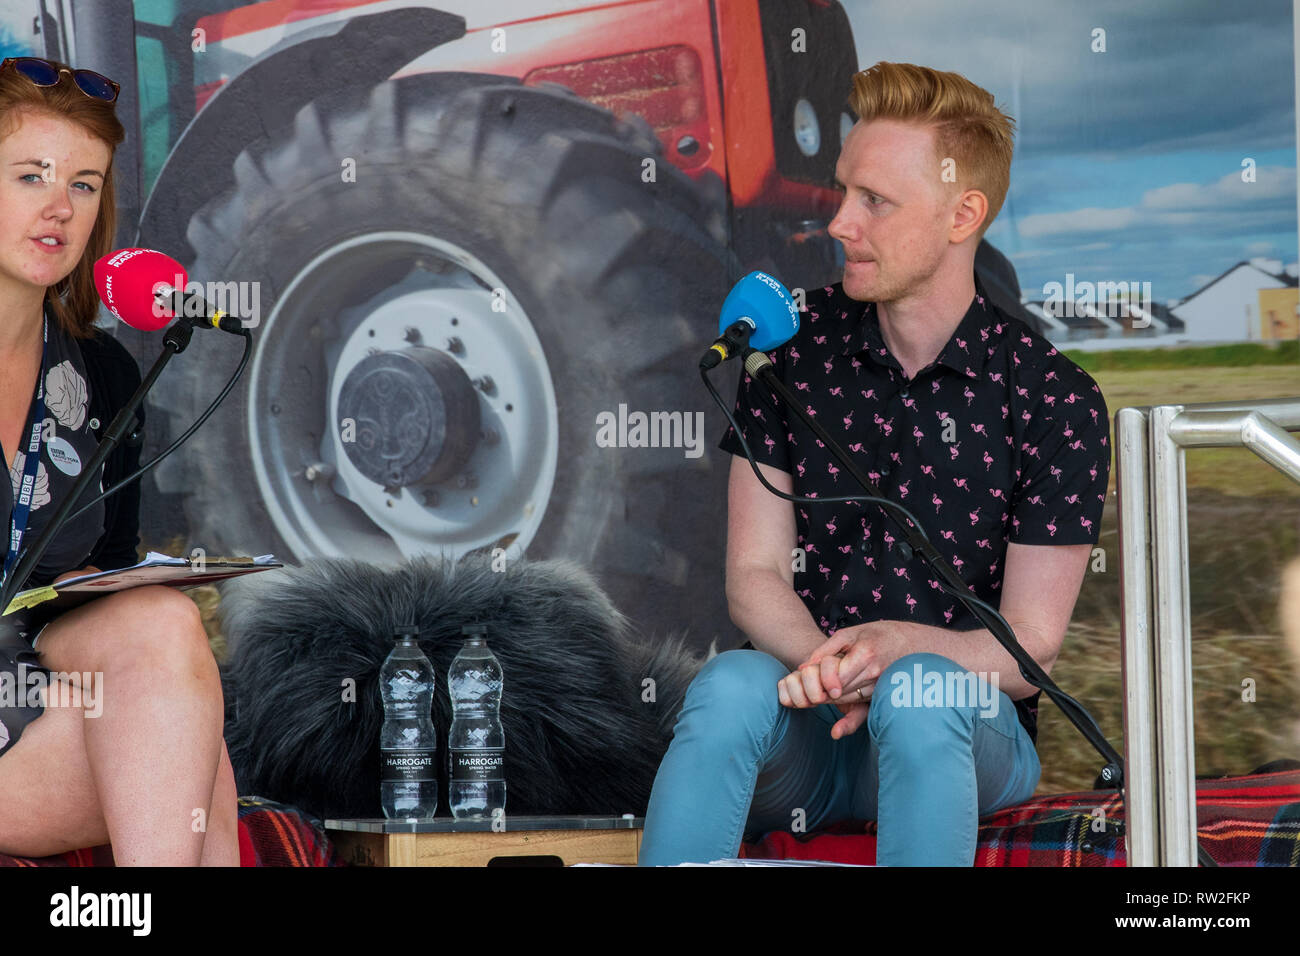 Harrogate, North Yorkshire, UK - July 12th, 2018: BBC Look North weather presenter Owain Wyn Evans at the Great Yorkshire Show on 12th July 2018 at Ha - Stock Image